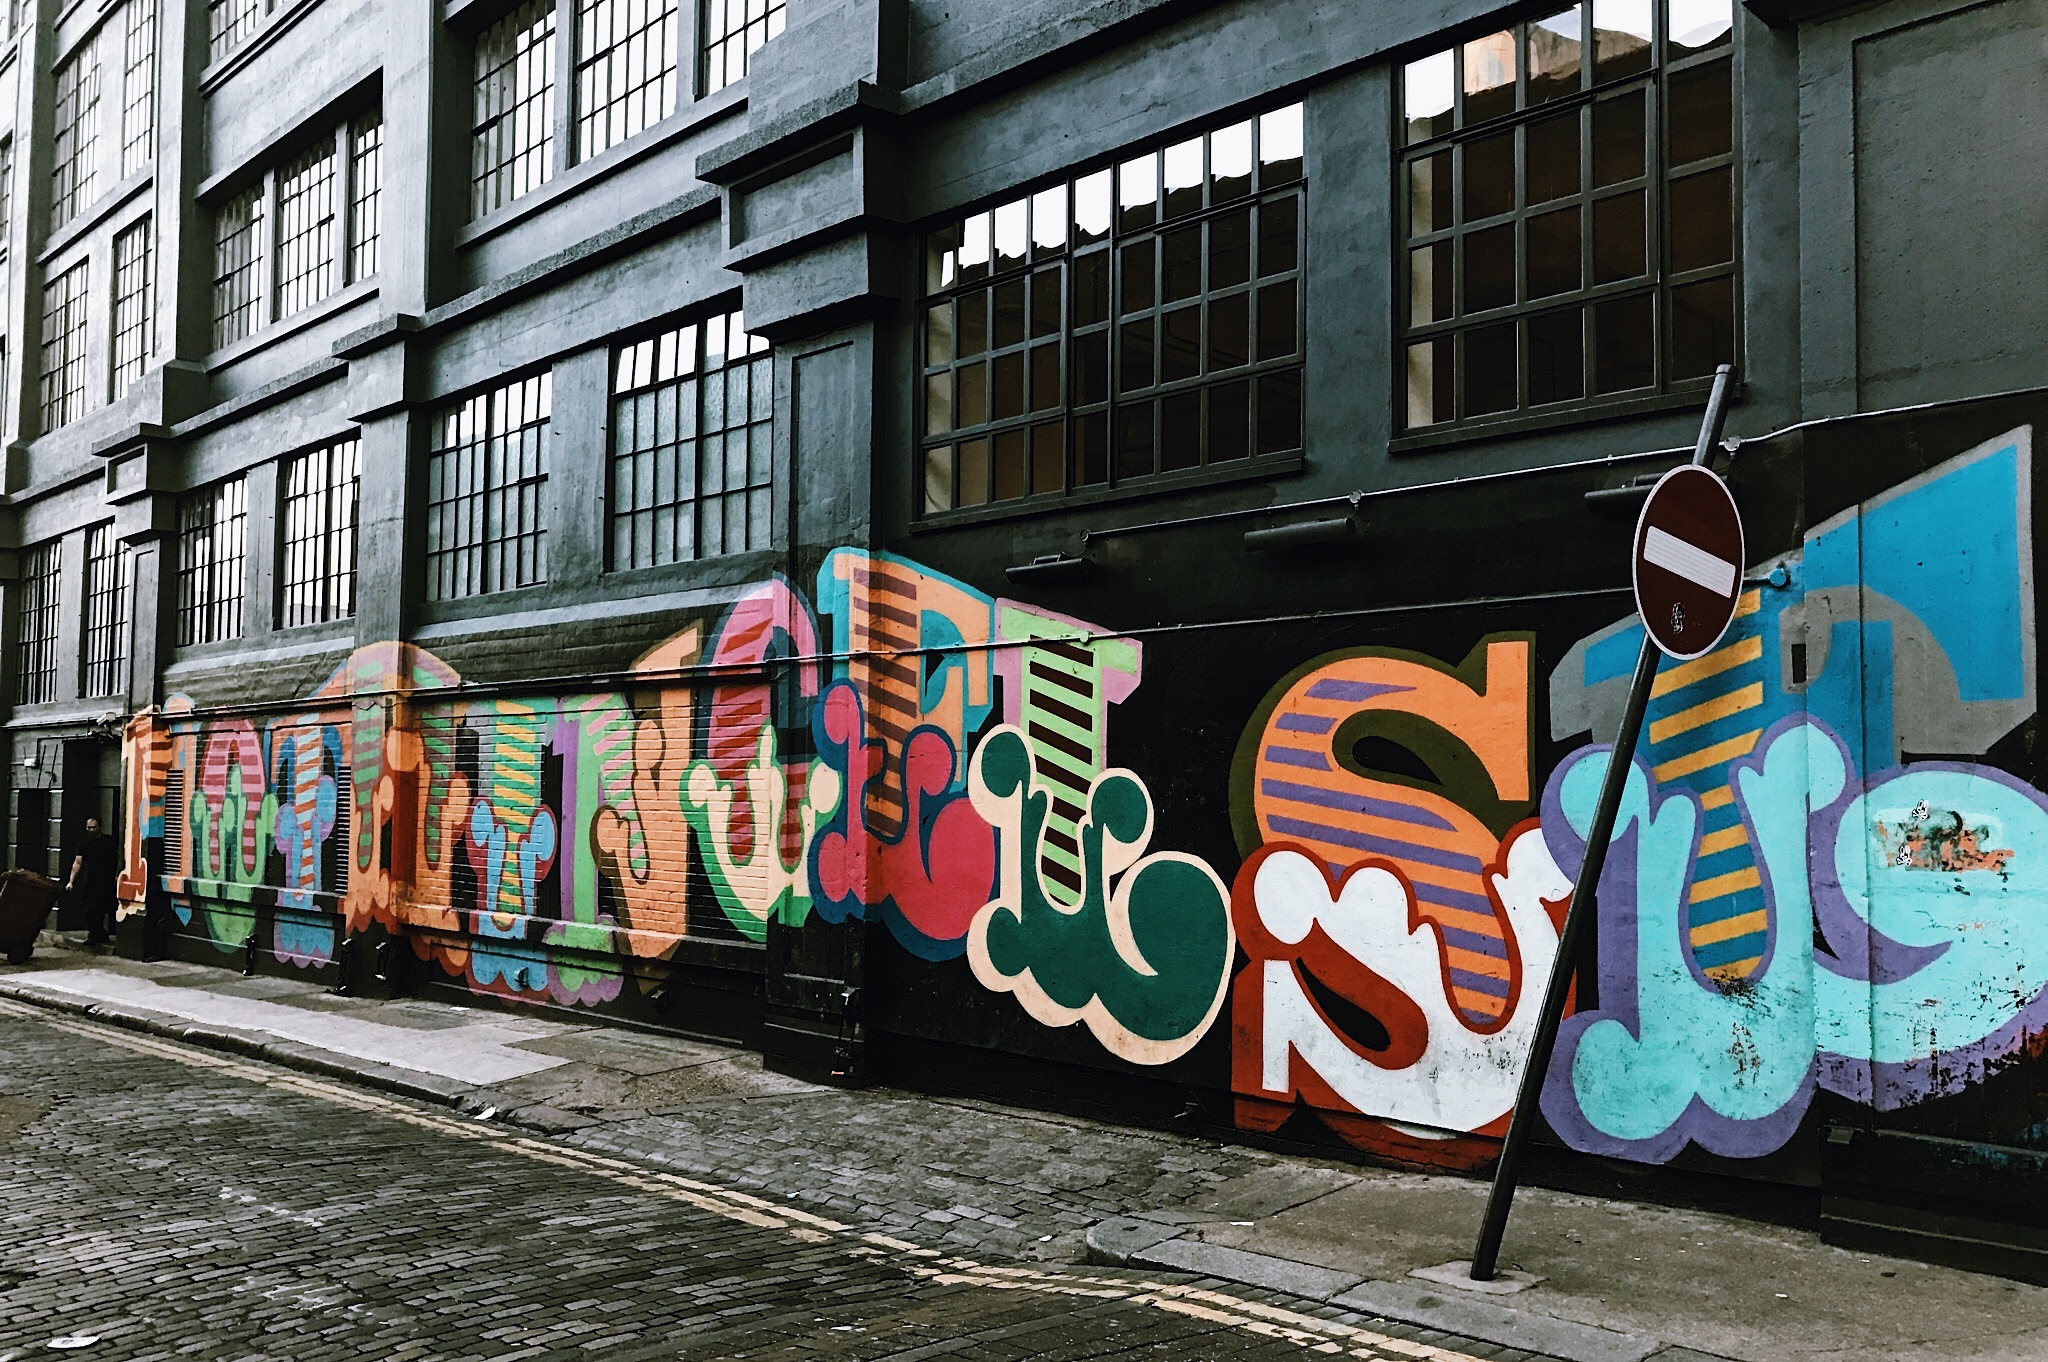 End-Tour-London-Street-Art-Guided-Tour-Banksy-London-East.jpg